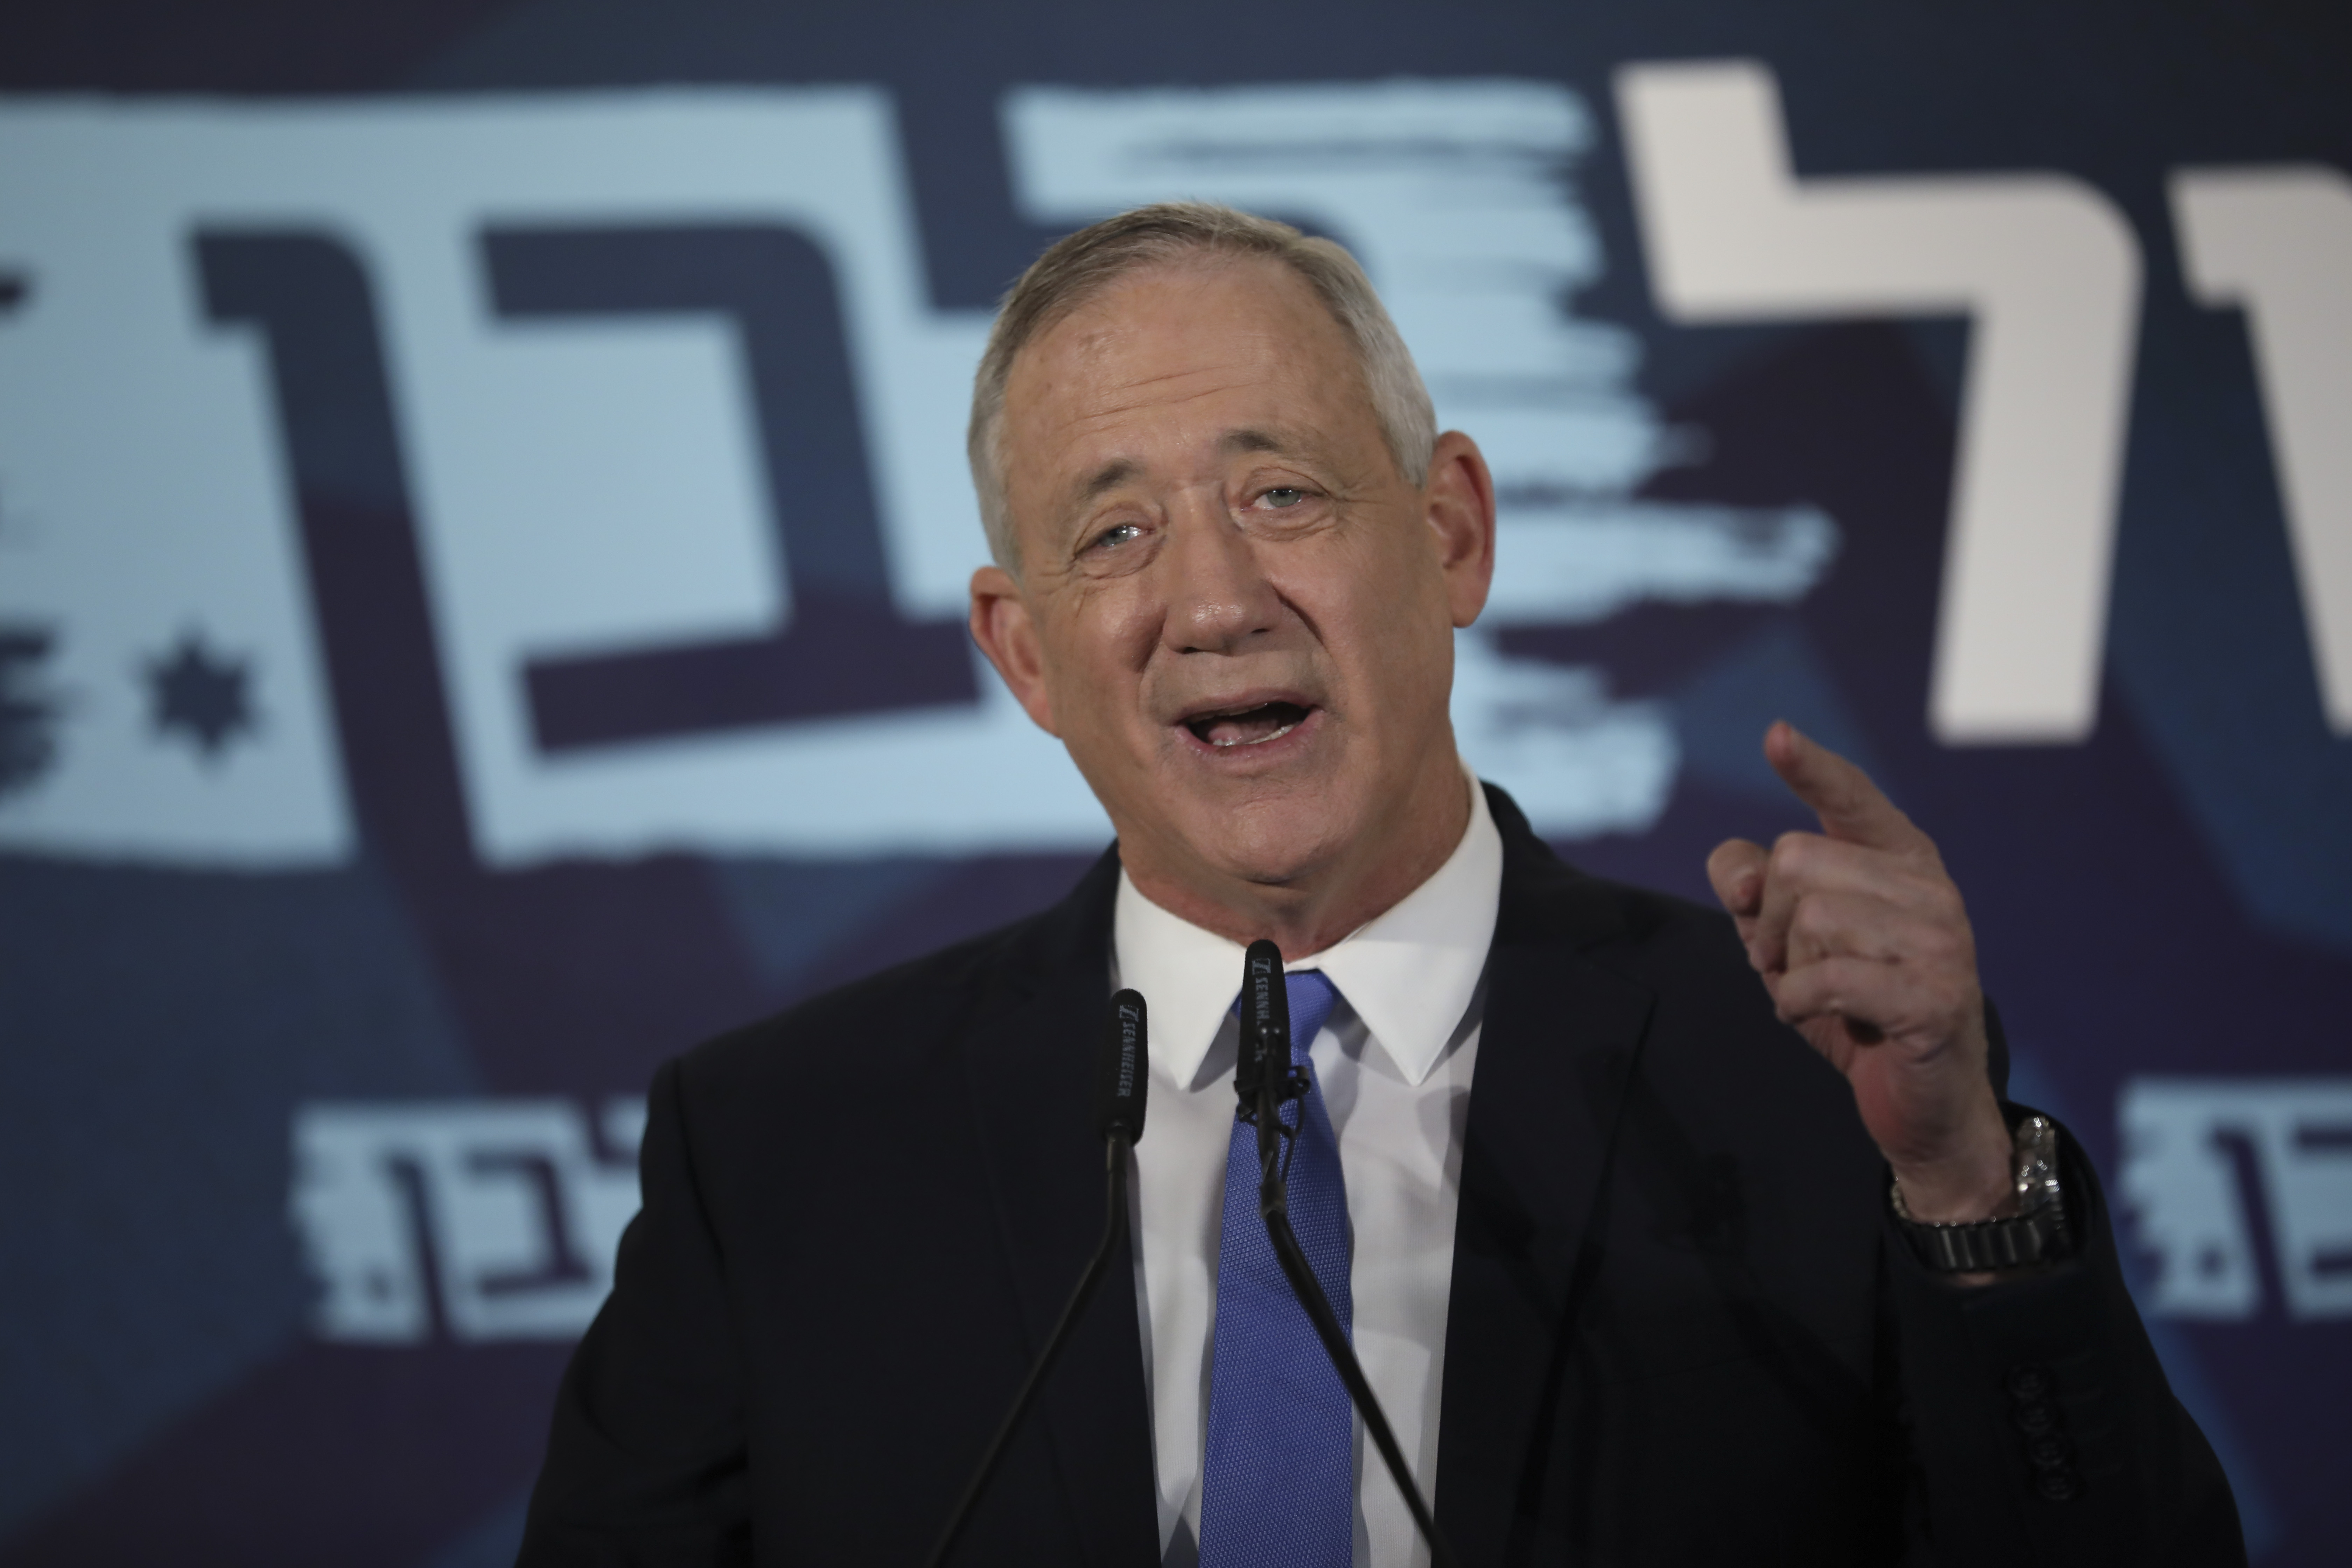 Blue and White party leader Benny Gantz addresses media in Tel Aviv,Israel. Wednesday, Nov. 20, 2019. Gantz has failed to form a new government by a deadline, dashing his hopes of toppling the long-time Israeli prime minister Netanyahu and pushing the country closer toward an unprecedented third election in less than a year.